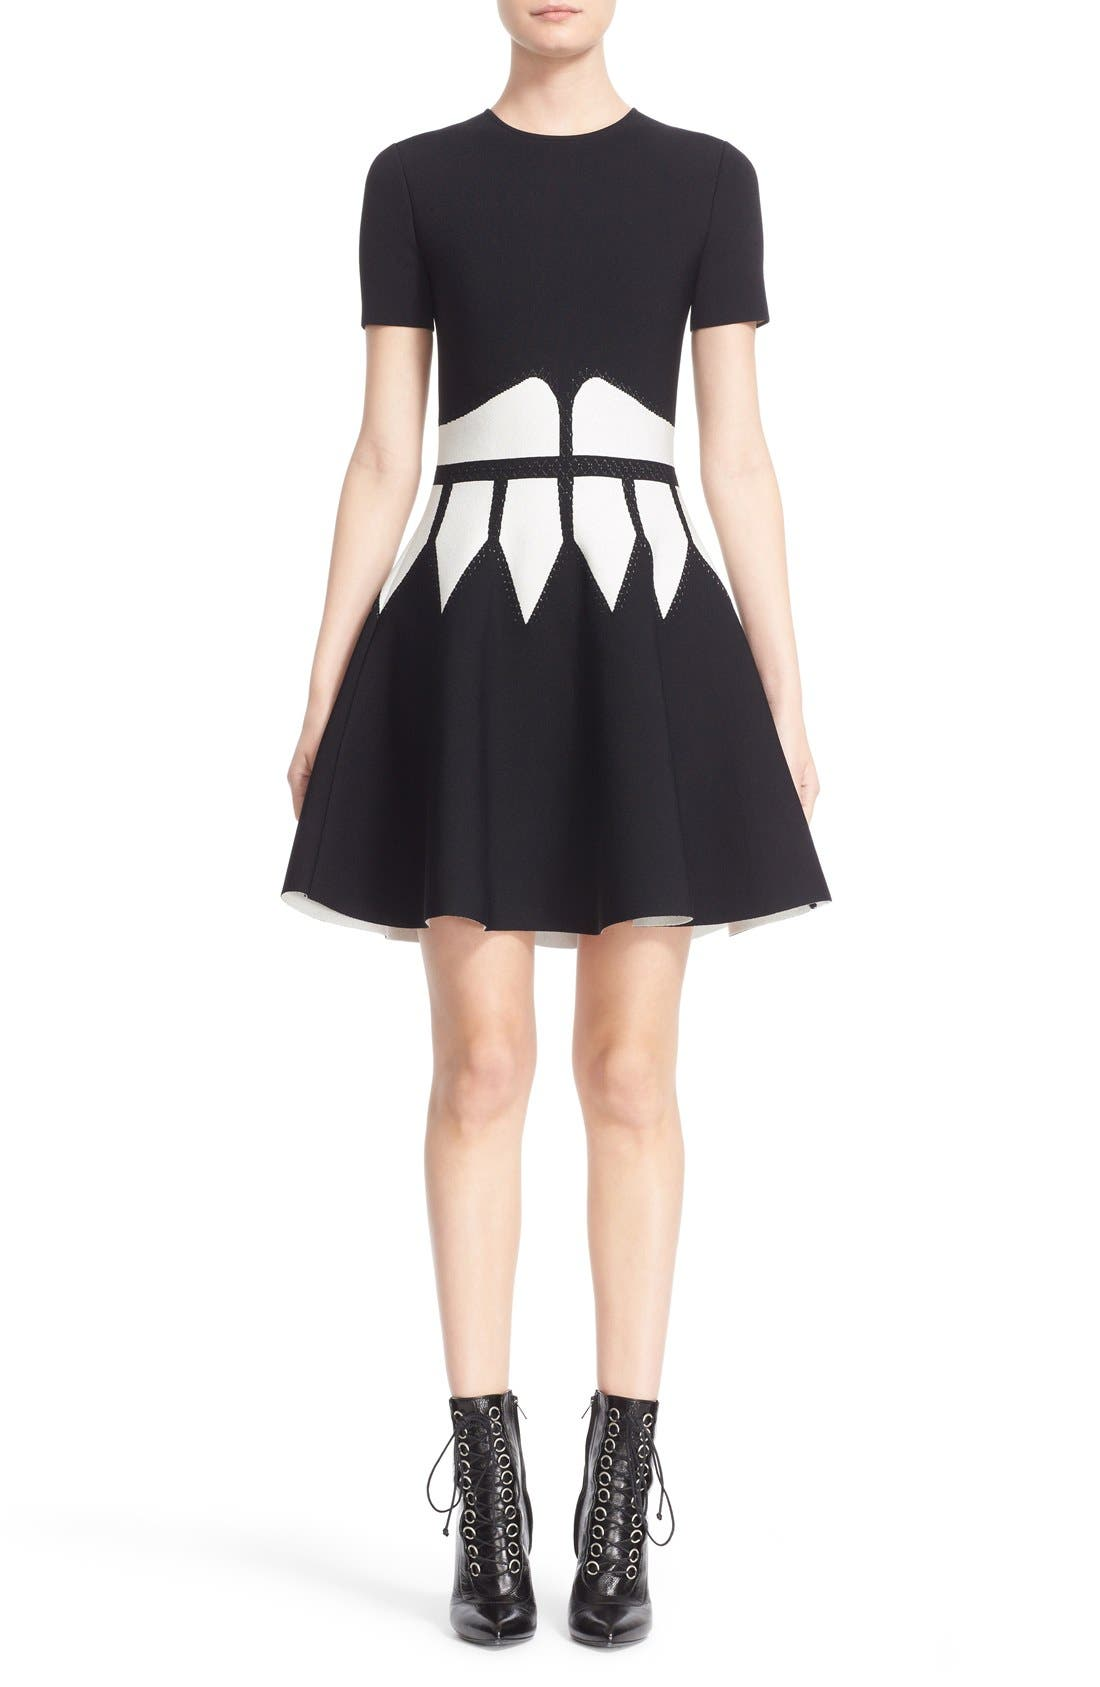 Alexander McQueen Intarsia Knit Fit & Flare Dress